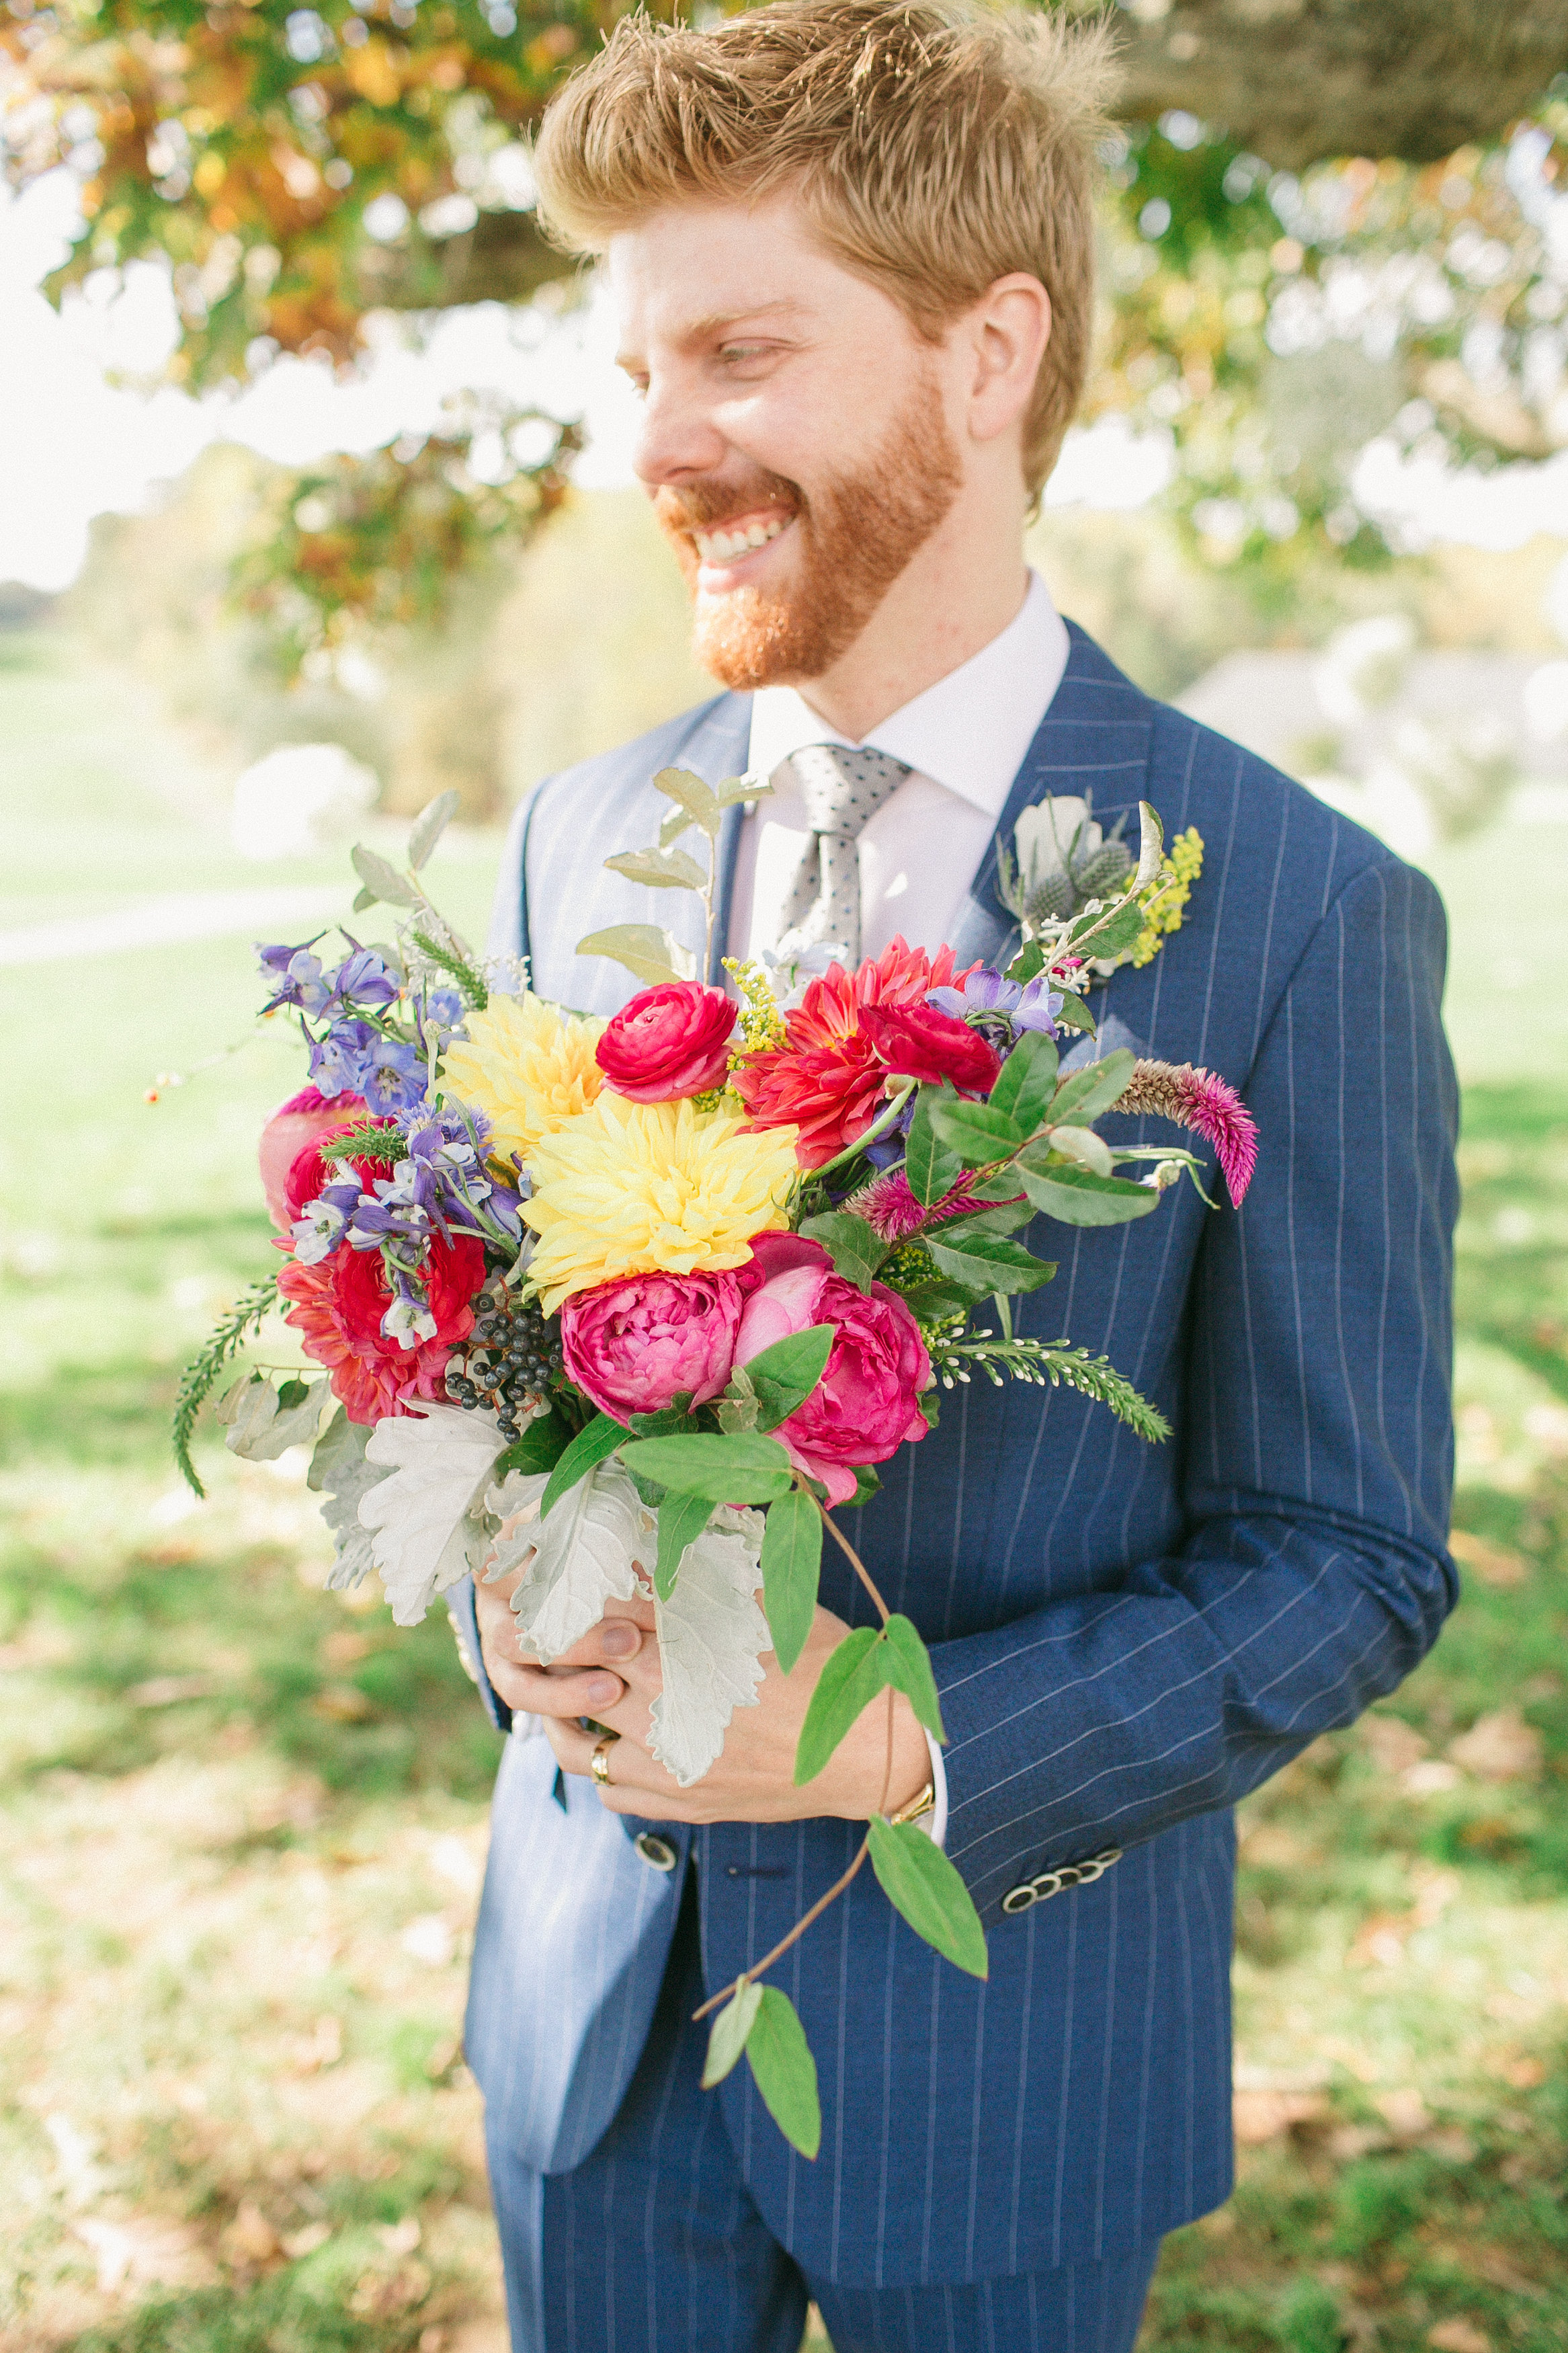 I feel like Sean has a Damian Lewis' little brother vibe going on...maybe I've just been watching too much Homeland lately.  Maggie's bouquet is filled with dusty miller, various pink garden roses, lysmachia, blue virburnum berry, dahlias, fuchsia celosia, blue delphenium, mardi gra solidago, ranunculus, cornflower, kochia, and foraged vine, wild olive, and bittersweet.